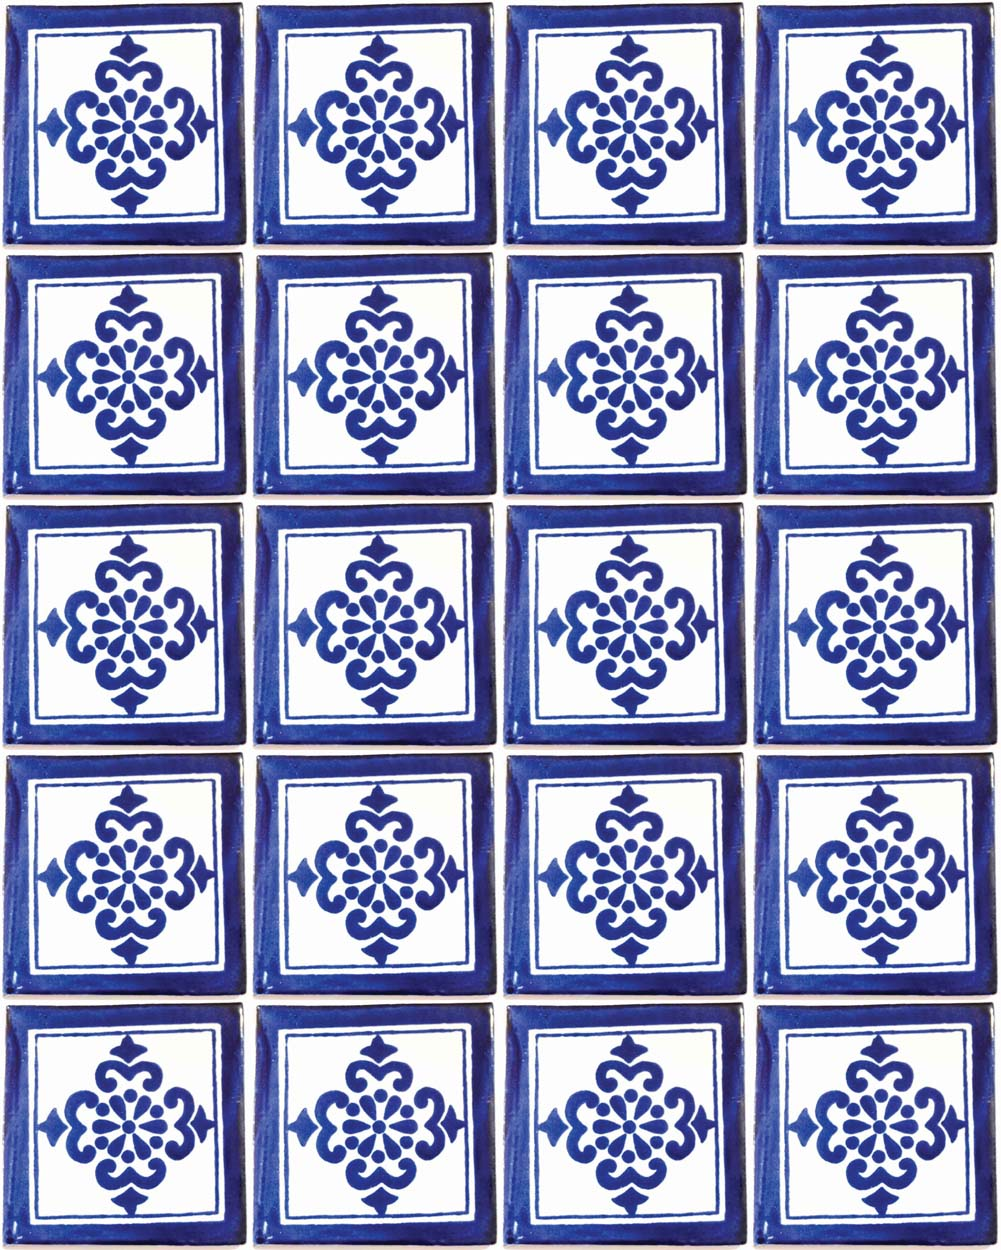 Anita blue hand made decorative wall tiles